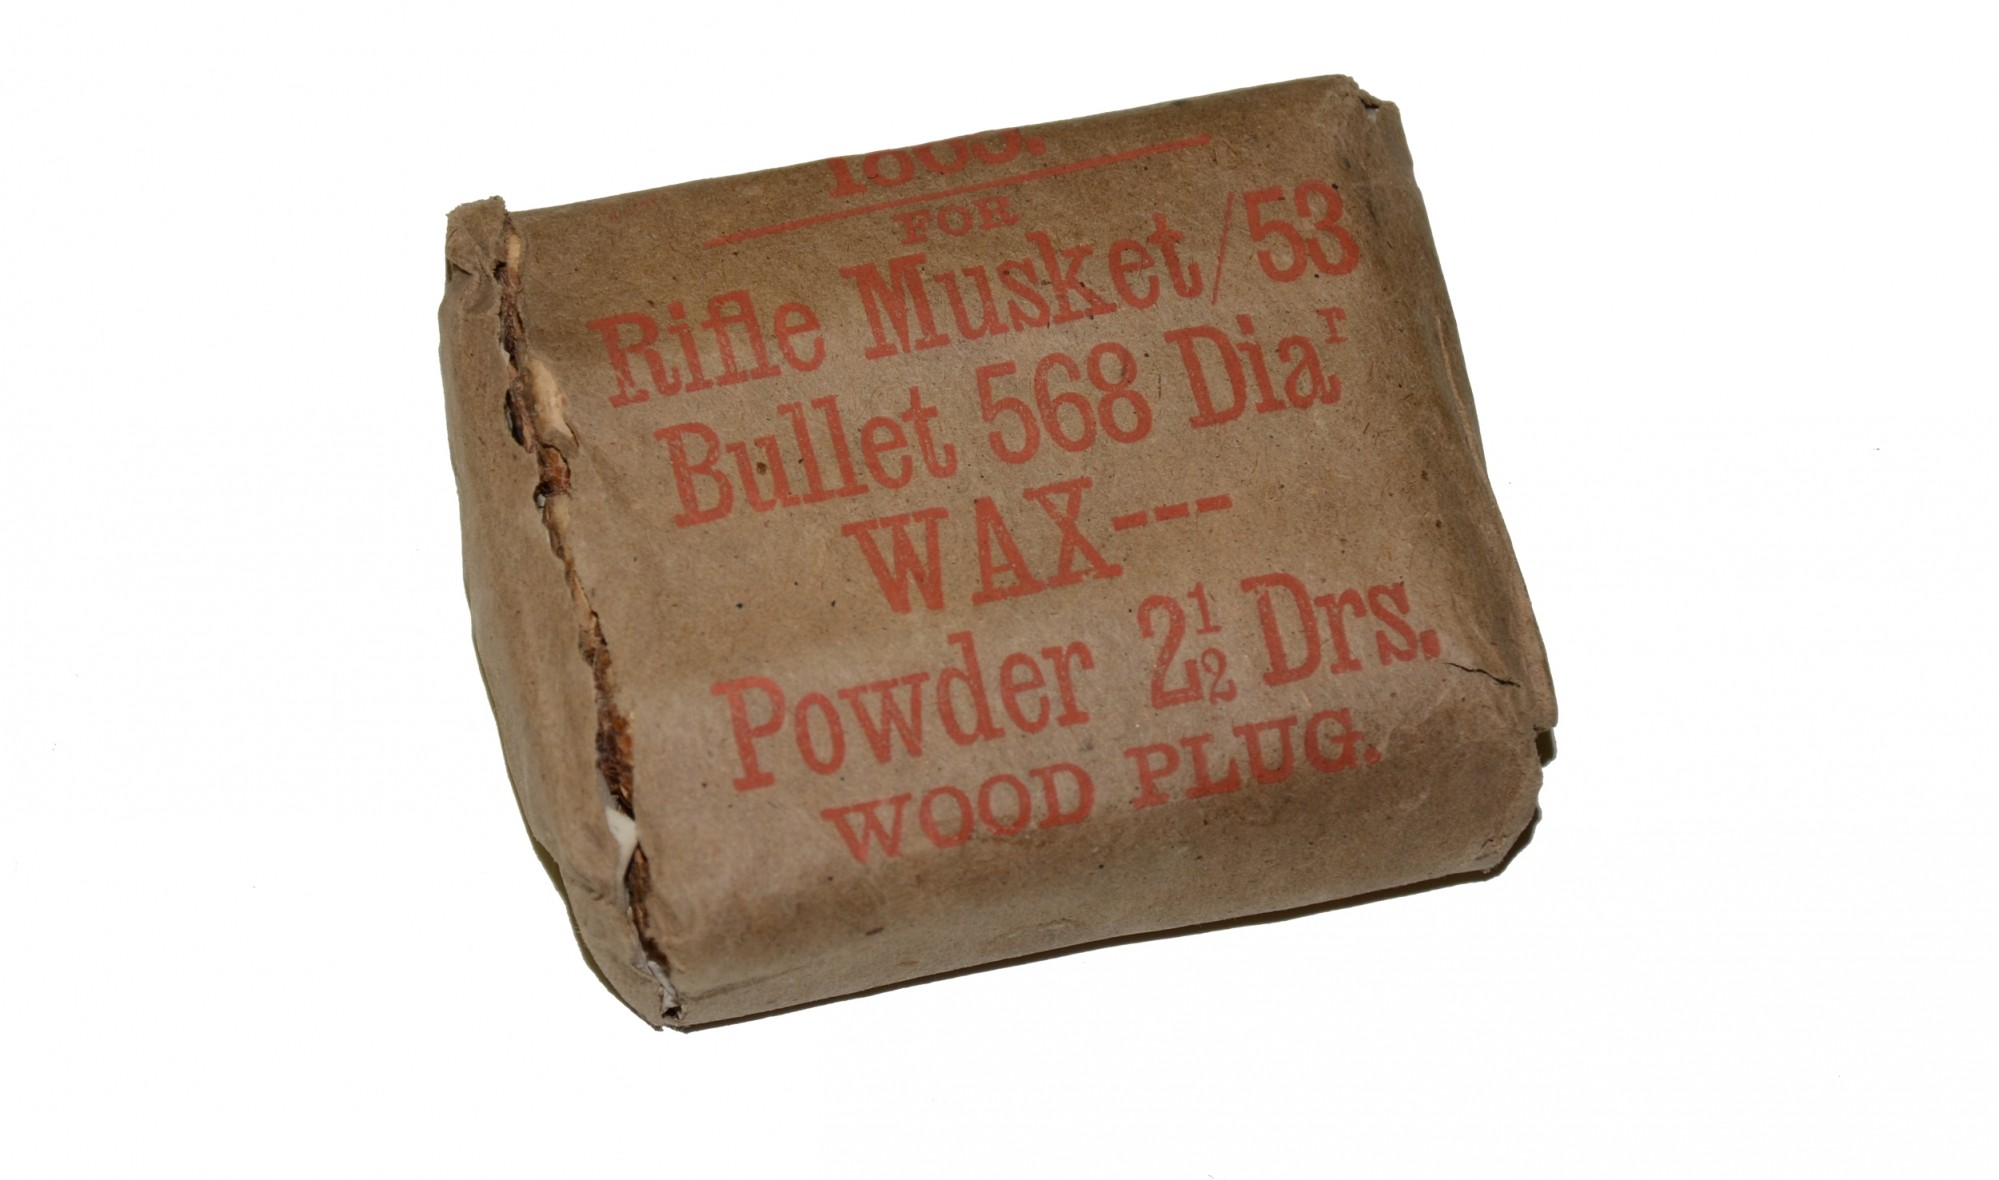 ORIGINAL, COMPLETE PACKAGE OF 'ENFIELD'.577 CALIBER PAPER CARTRIDGES